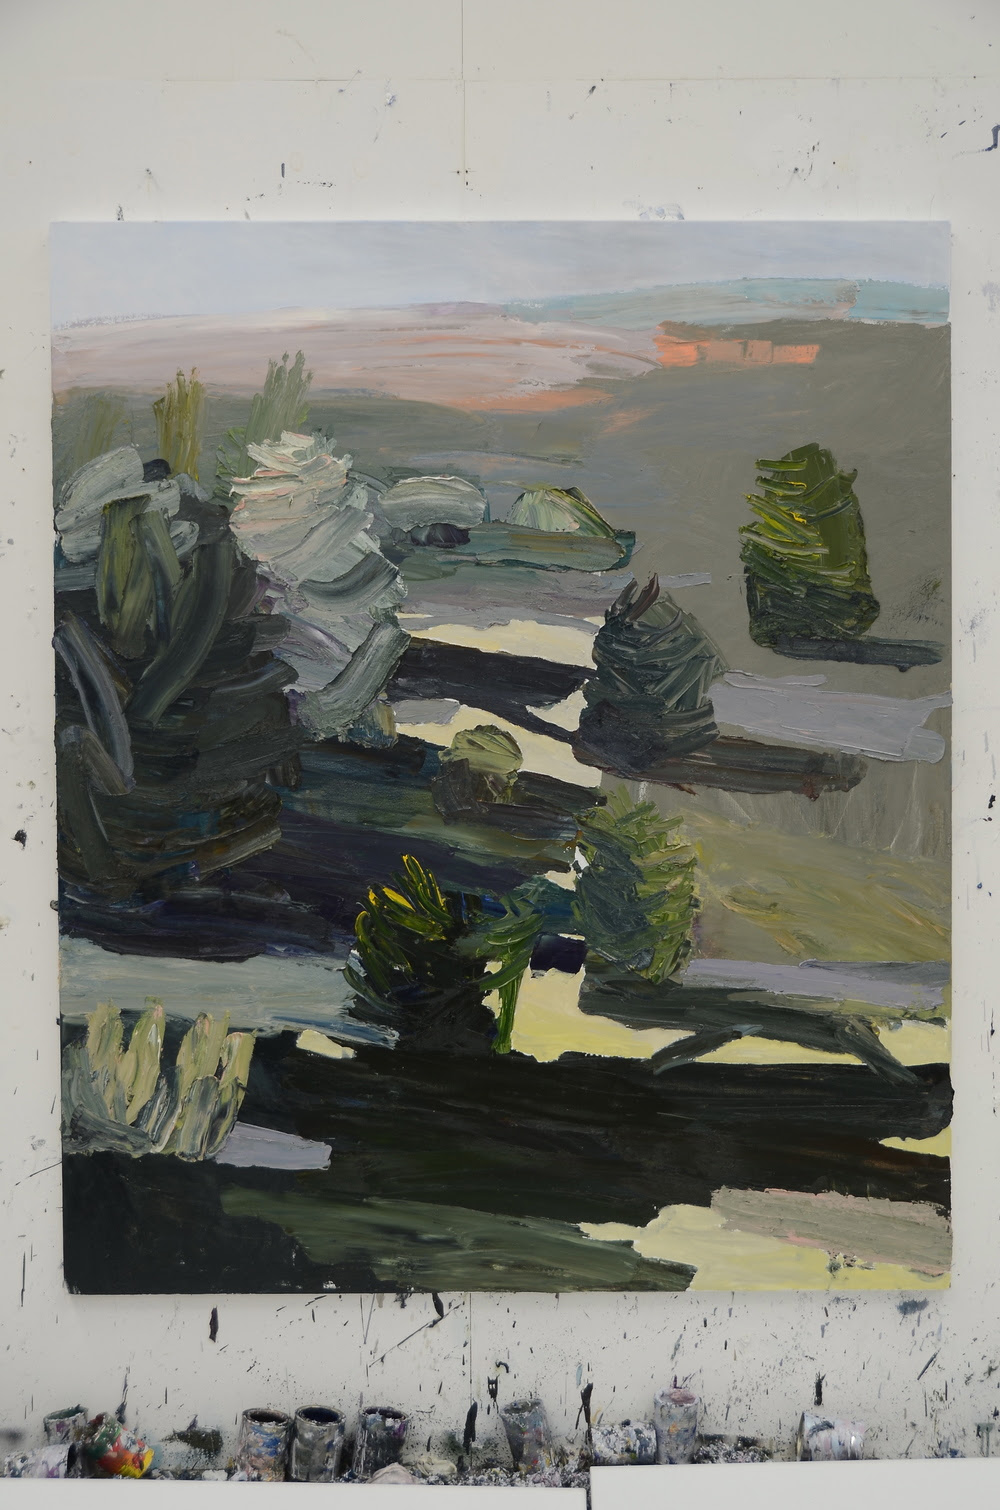 Burrawong revisited 2013 oil on linen 183 x 152cm